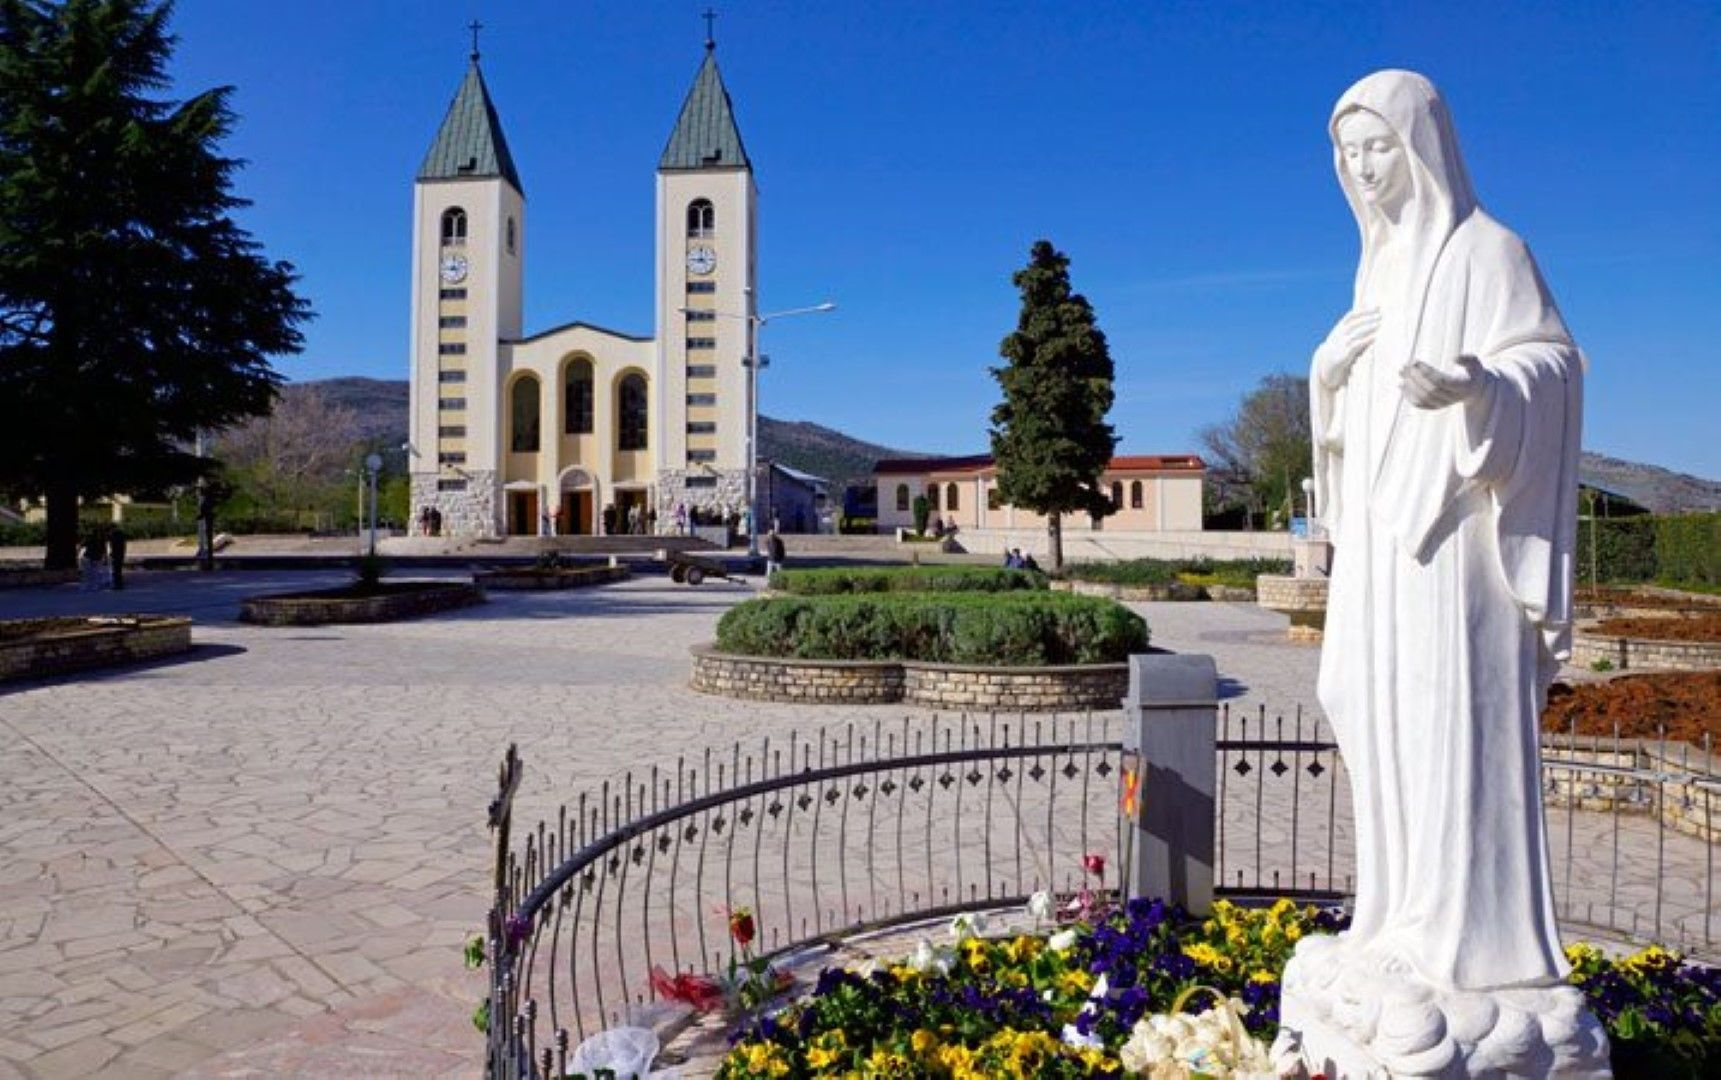 Private Tour: Full-Day Trip to Medjugorje